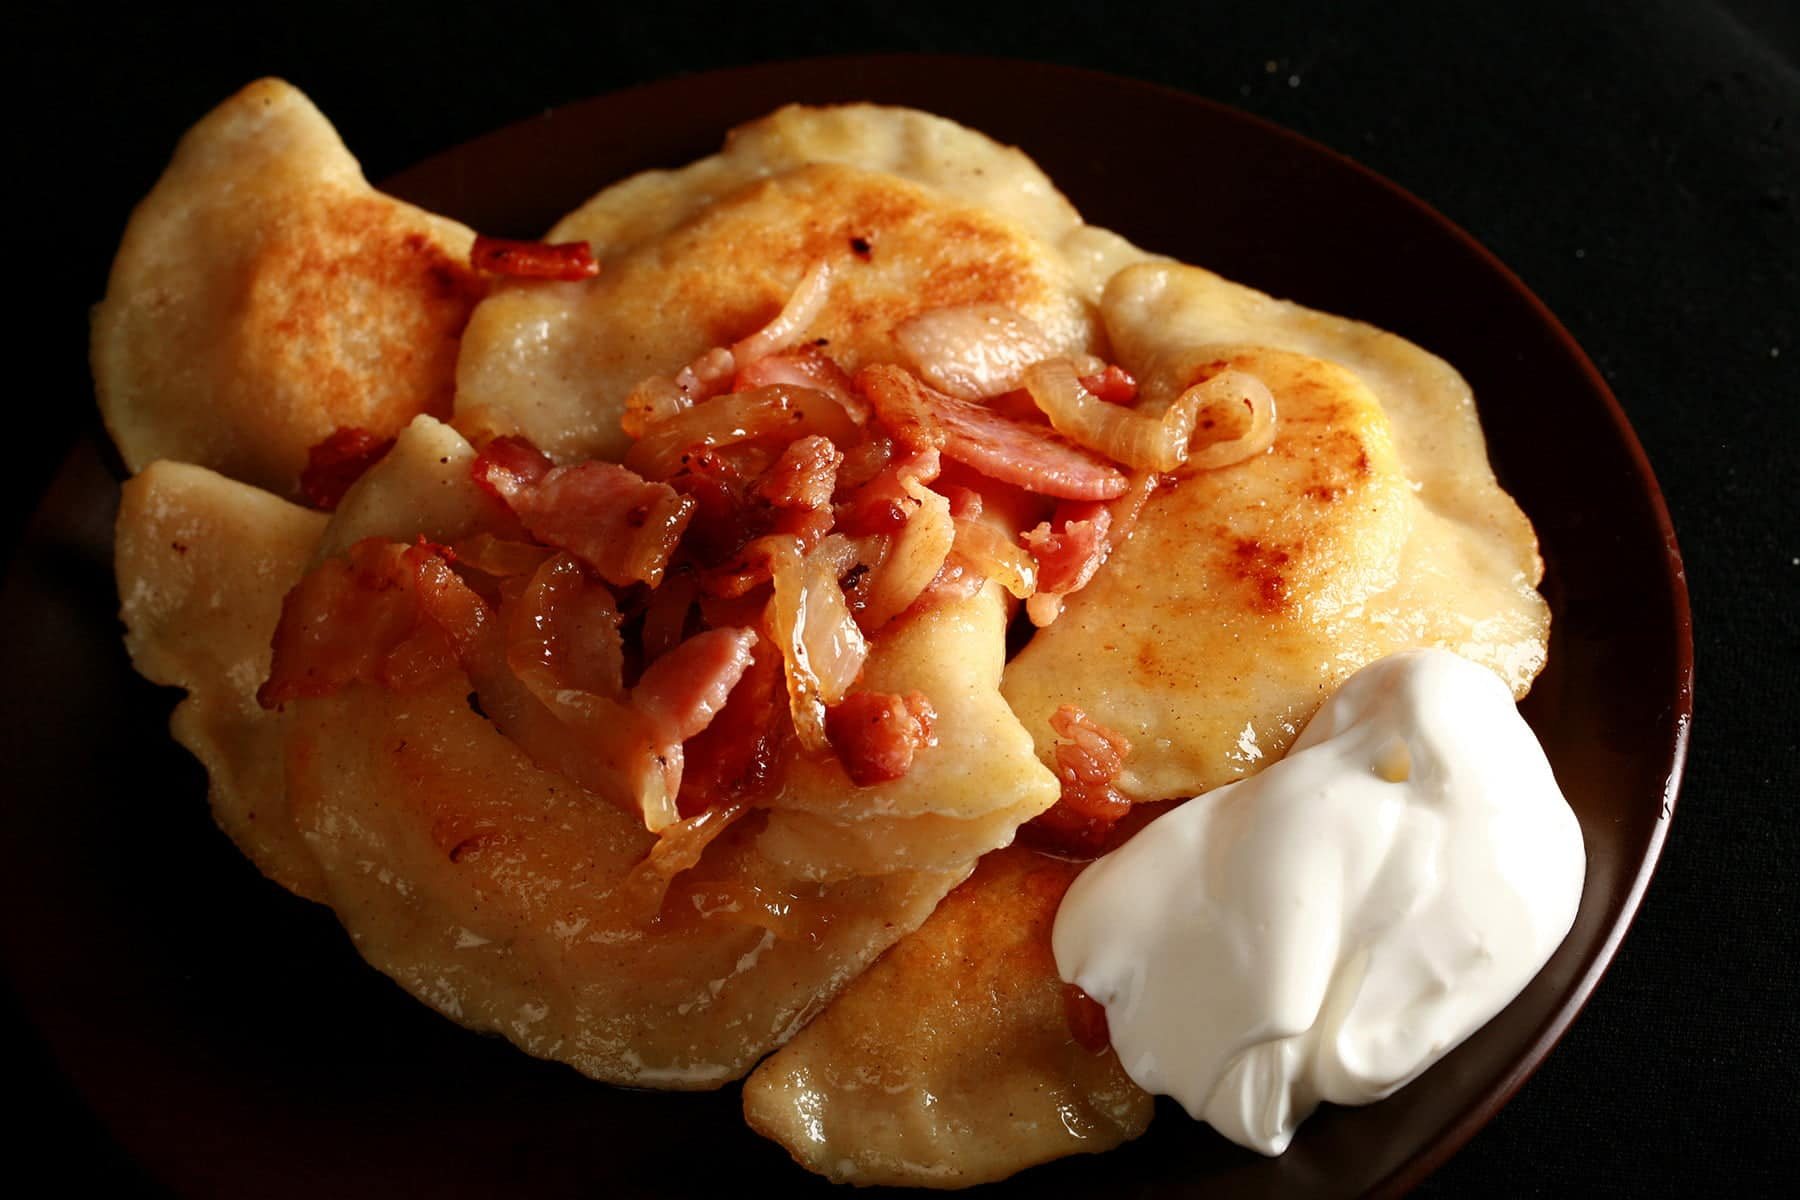 A plate of homemade pierogi - Ukrainian dumplings filled with cheesy potatoes. They are pictured with pieces of bacon on top, and a scoop of sour cream on the side.